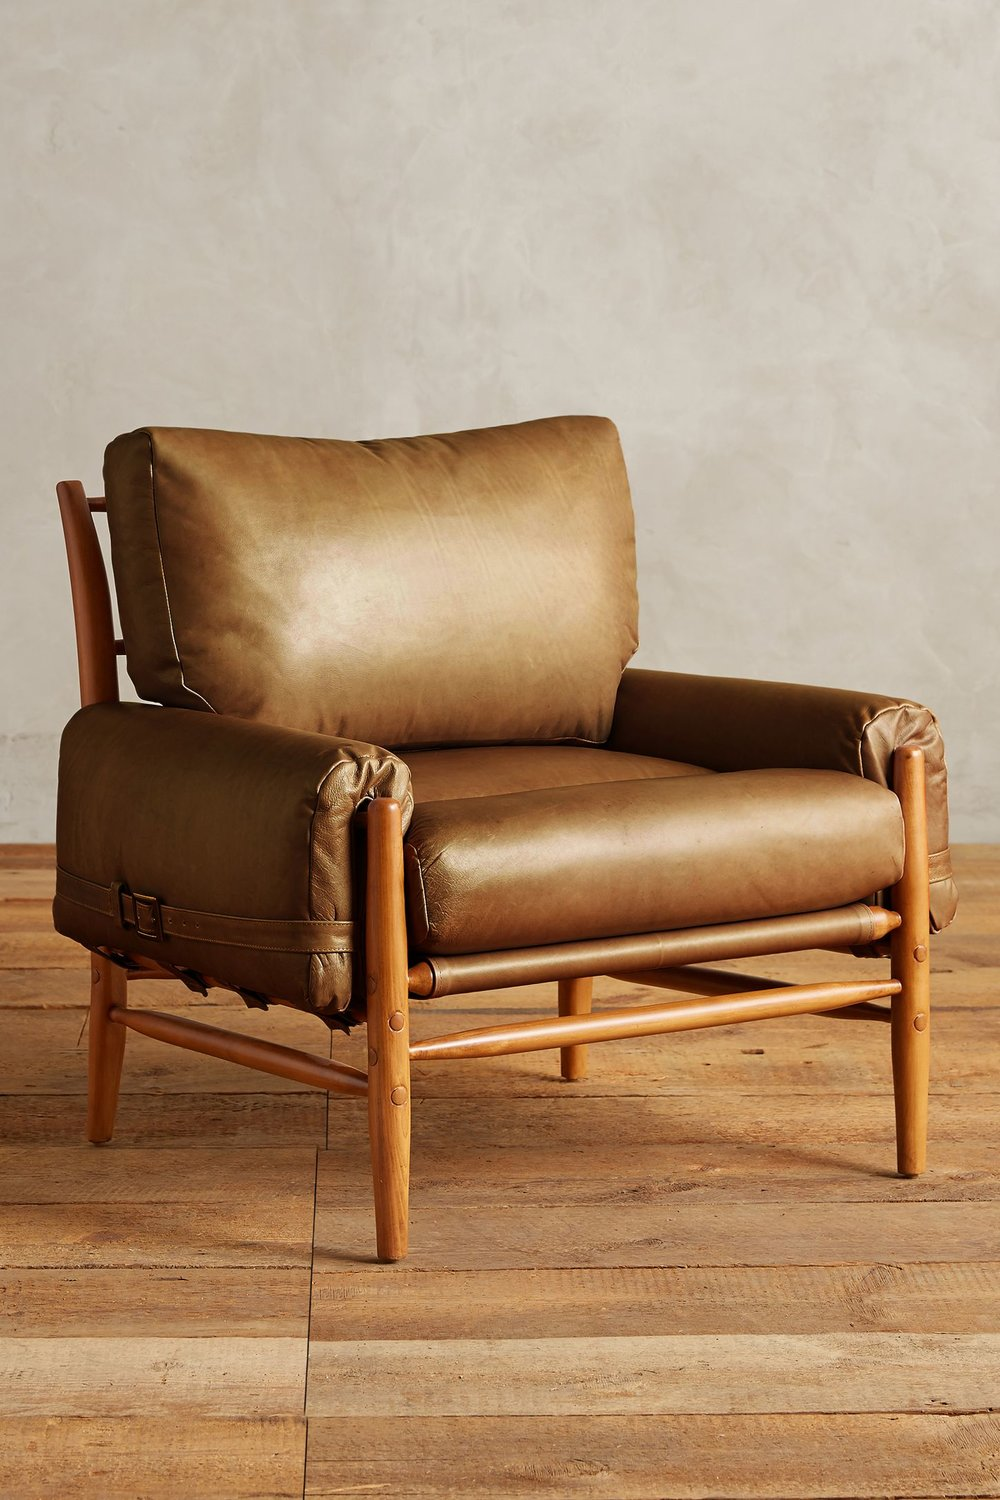 Rhys Chair from Anthropologie